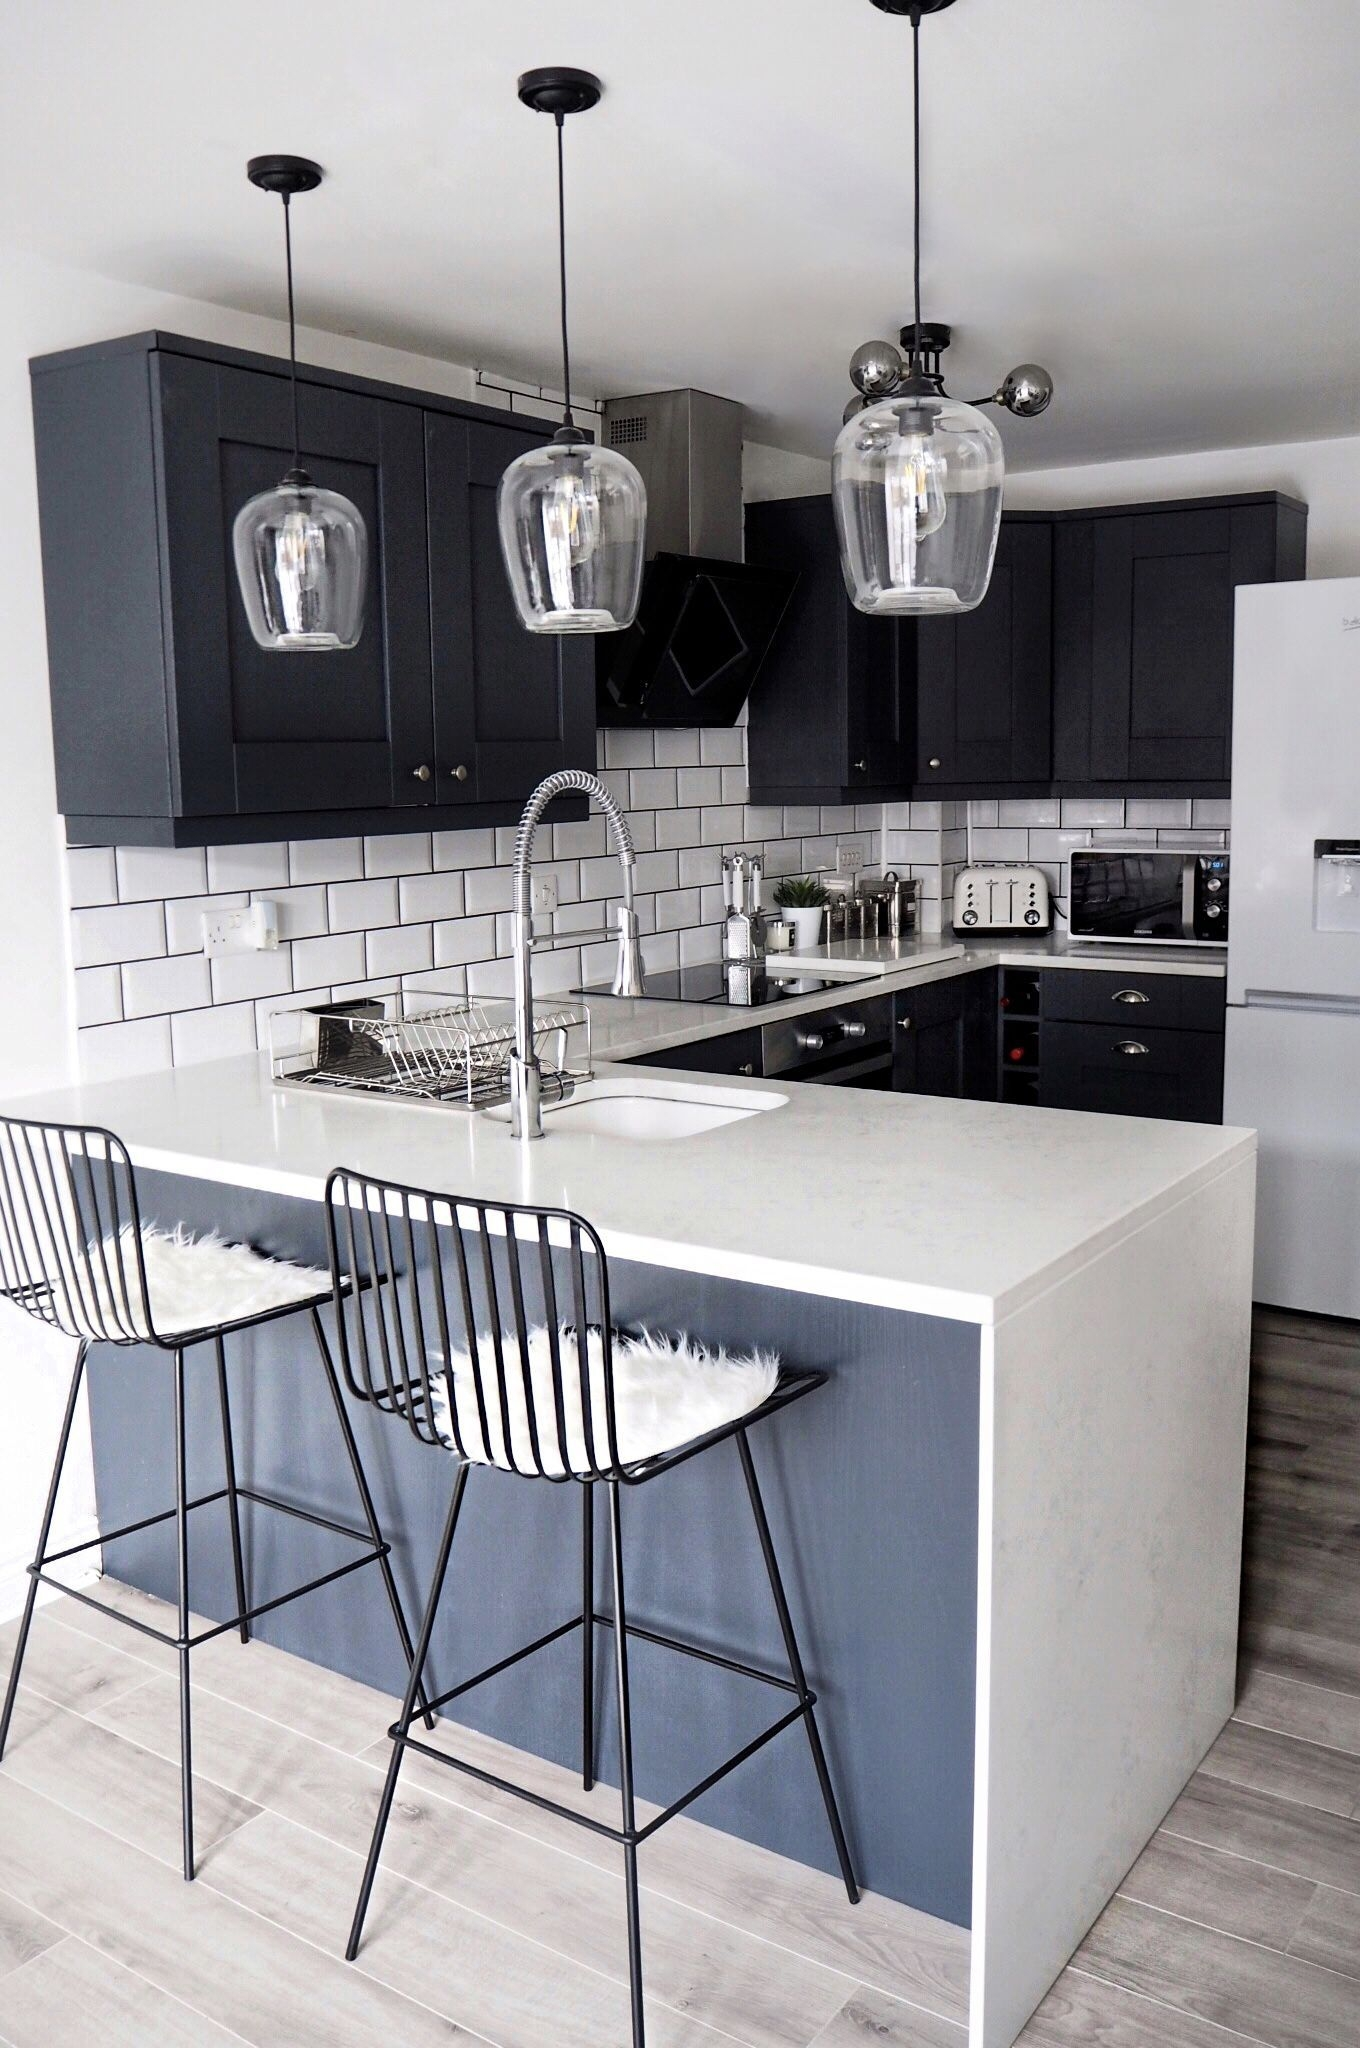 Delightful Decorating Ideas for Kitchens On Engaging Navy and White Marble Kitchen Inspo Decor Interior Ideas On Decorating Ideas for Kitchens